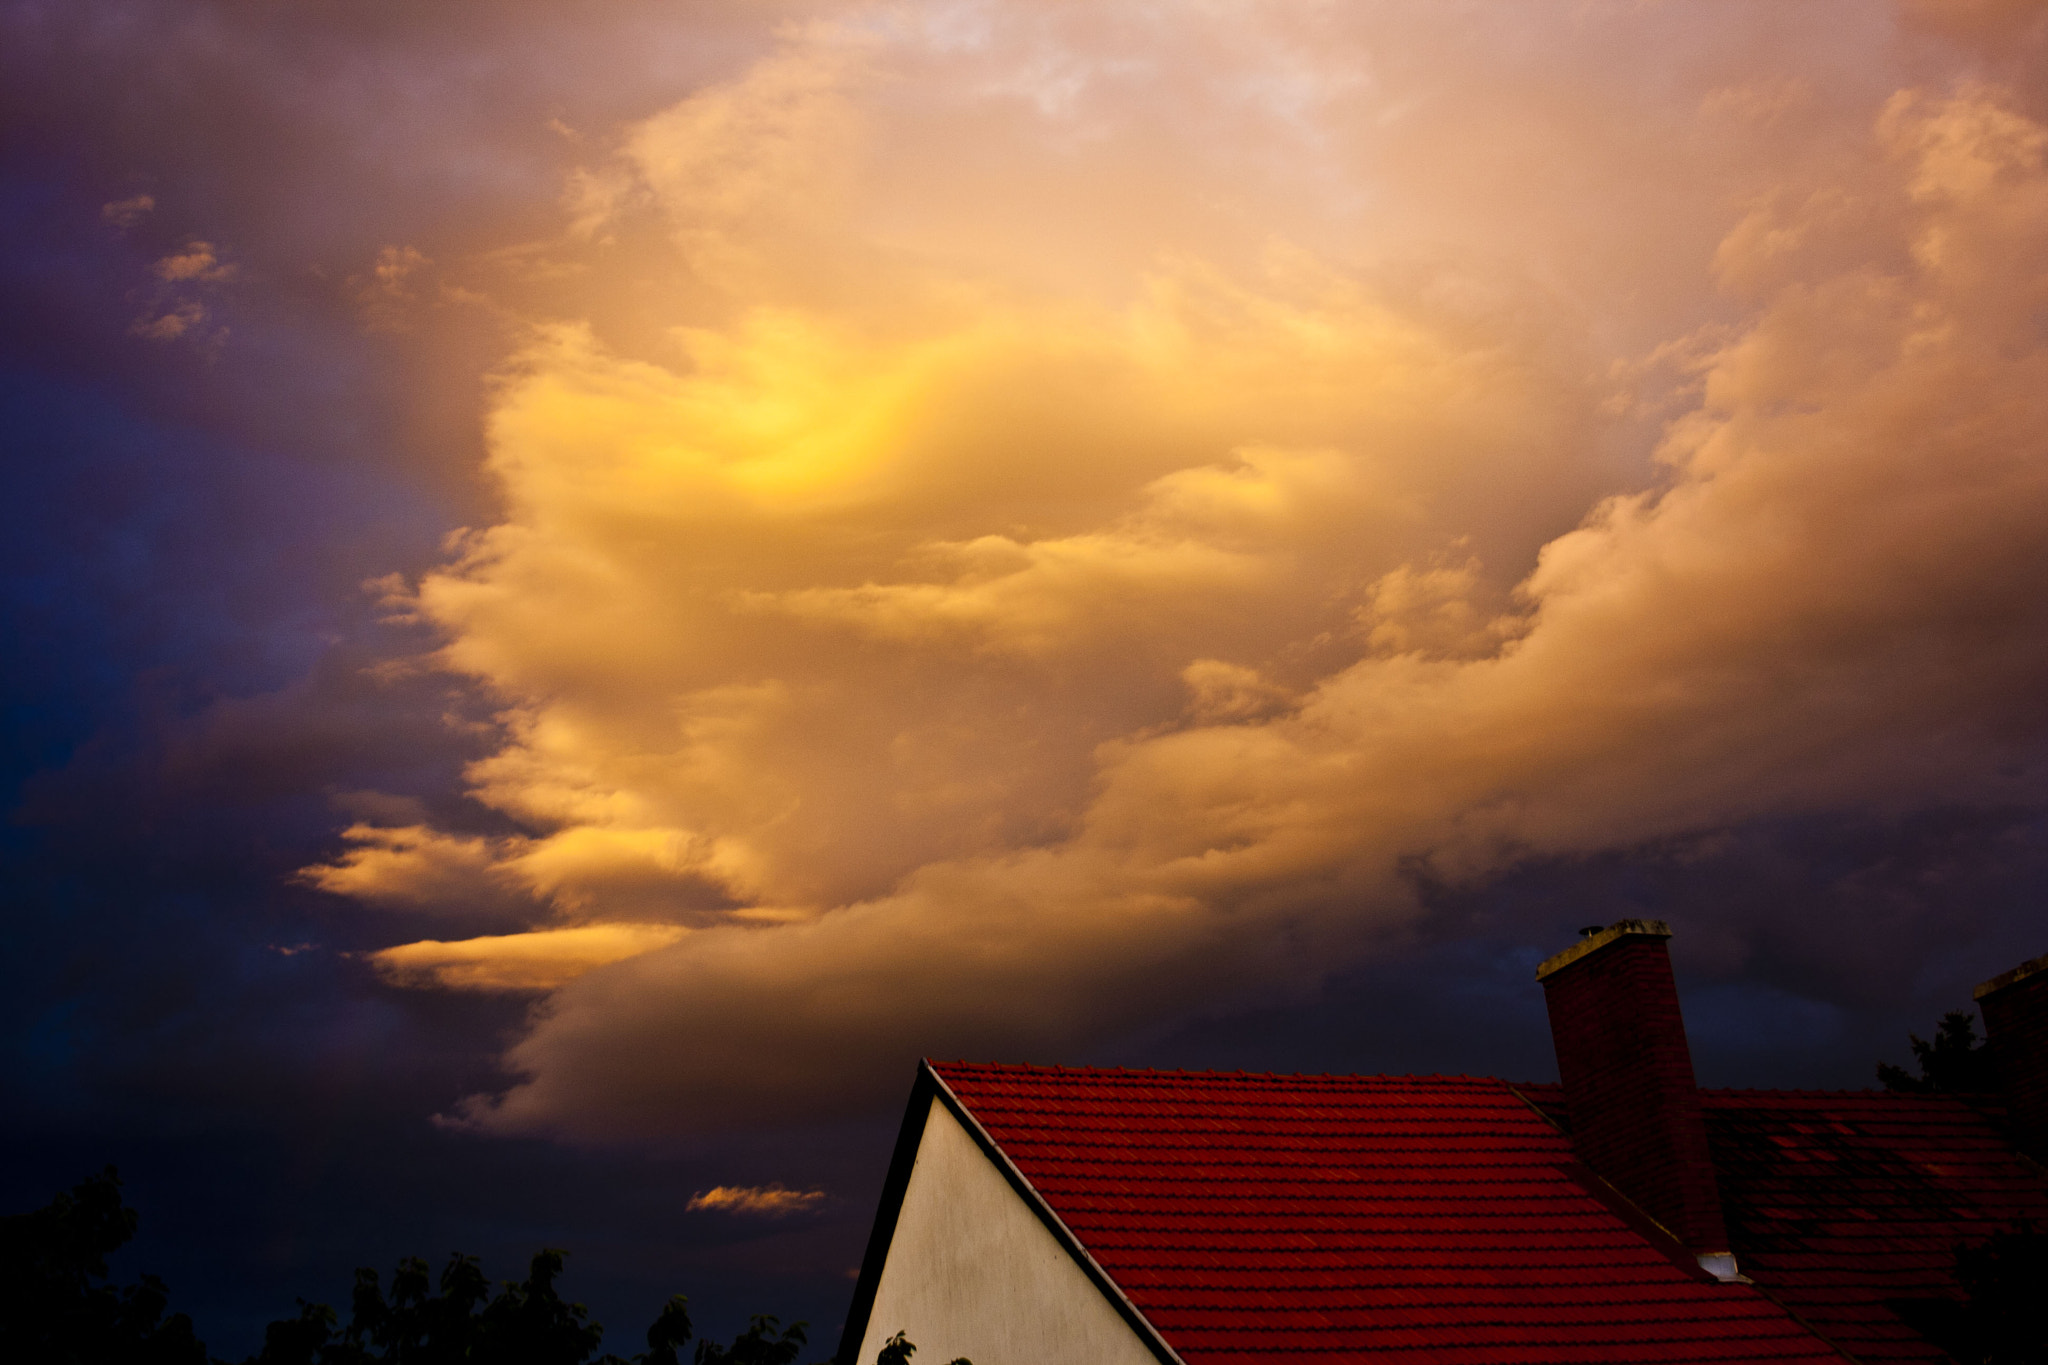 Photograph Sunset after storm by Alexandra Major on 500px